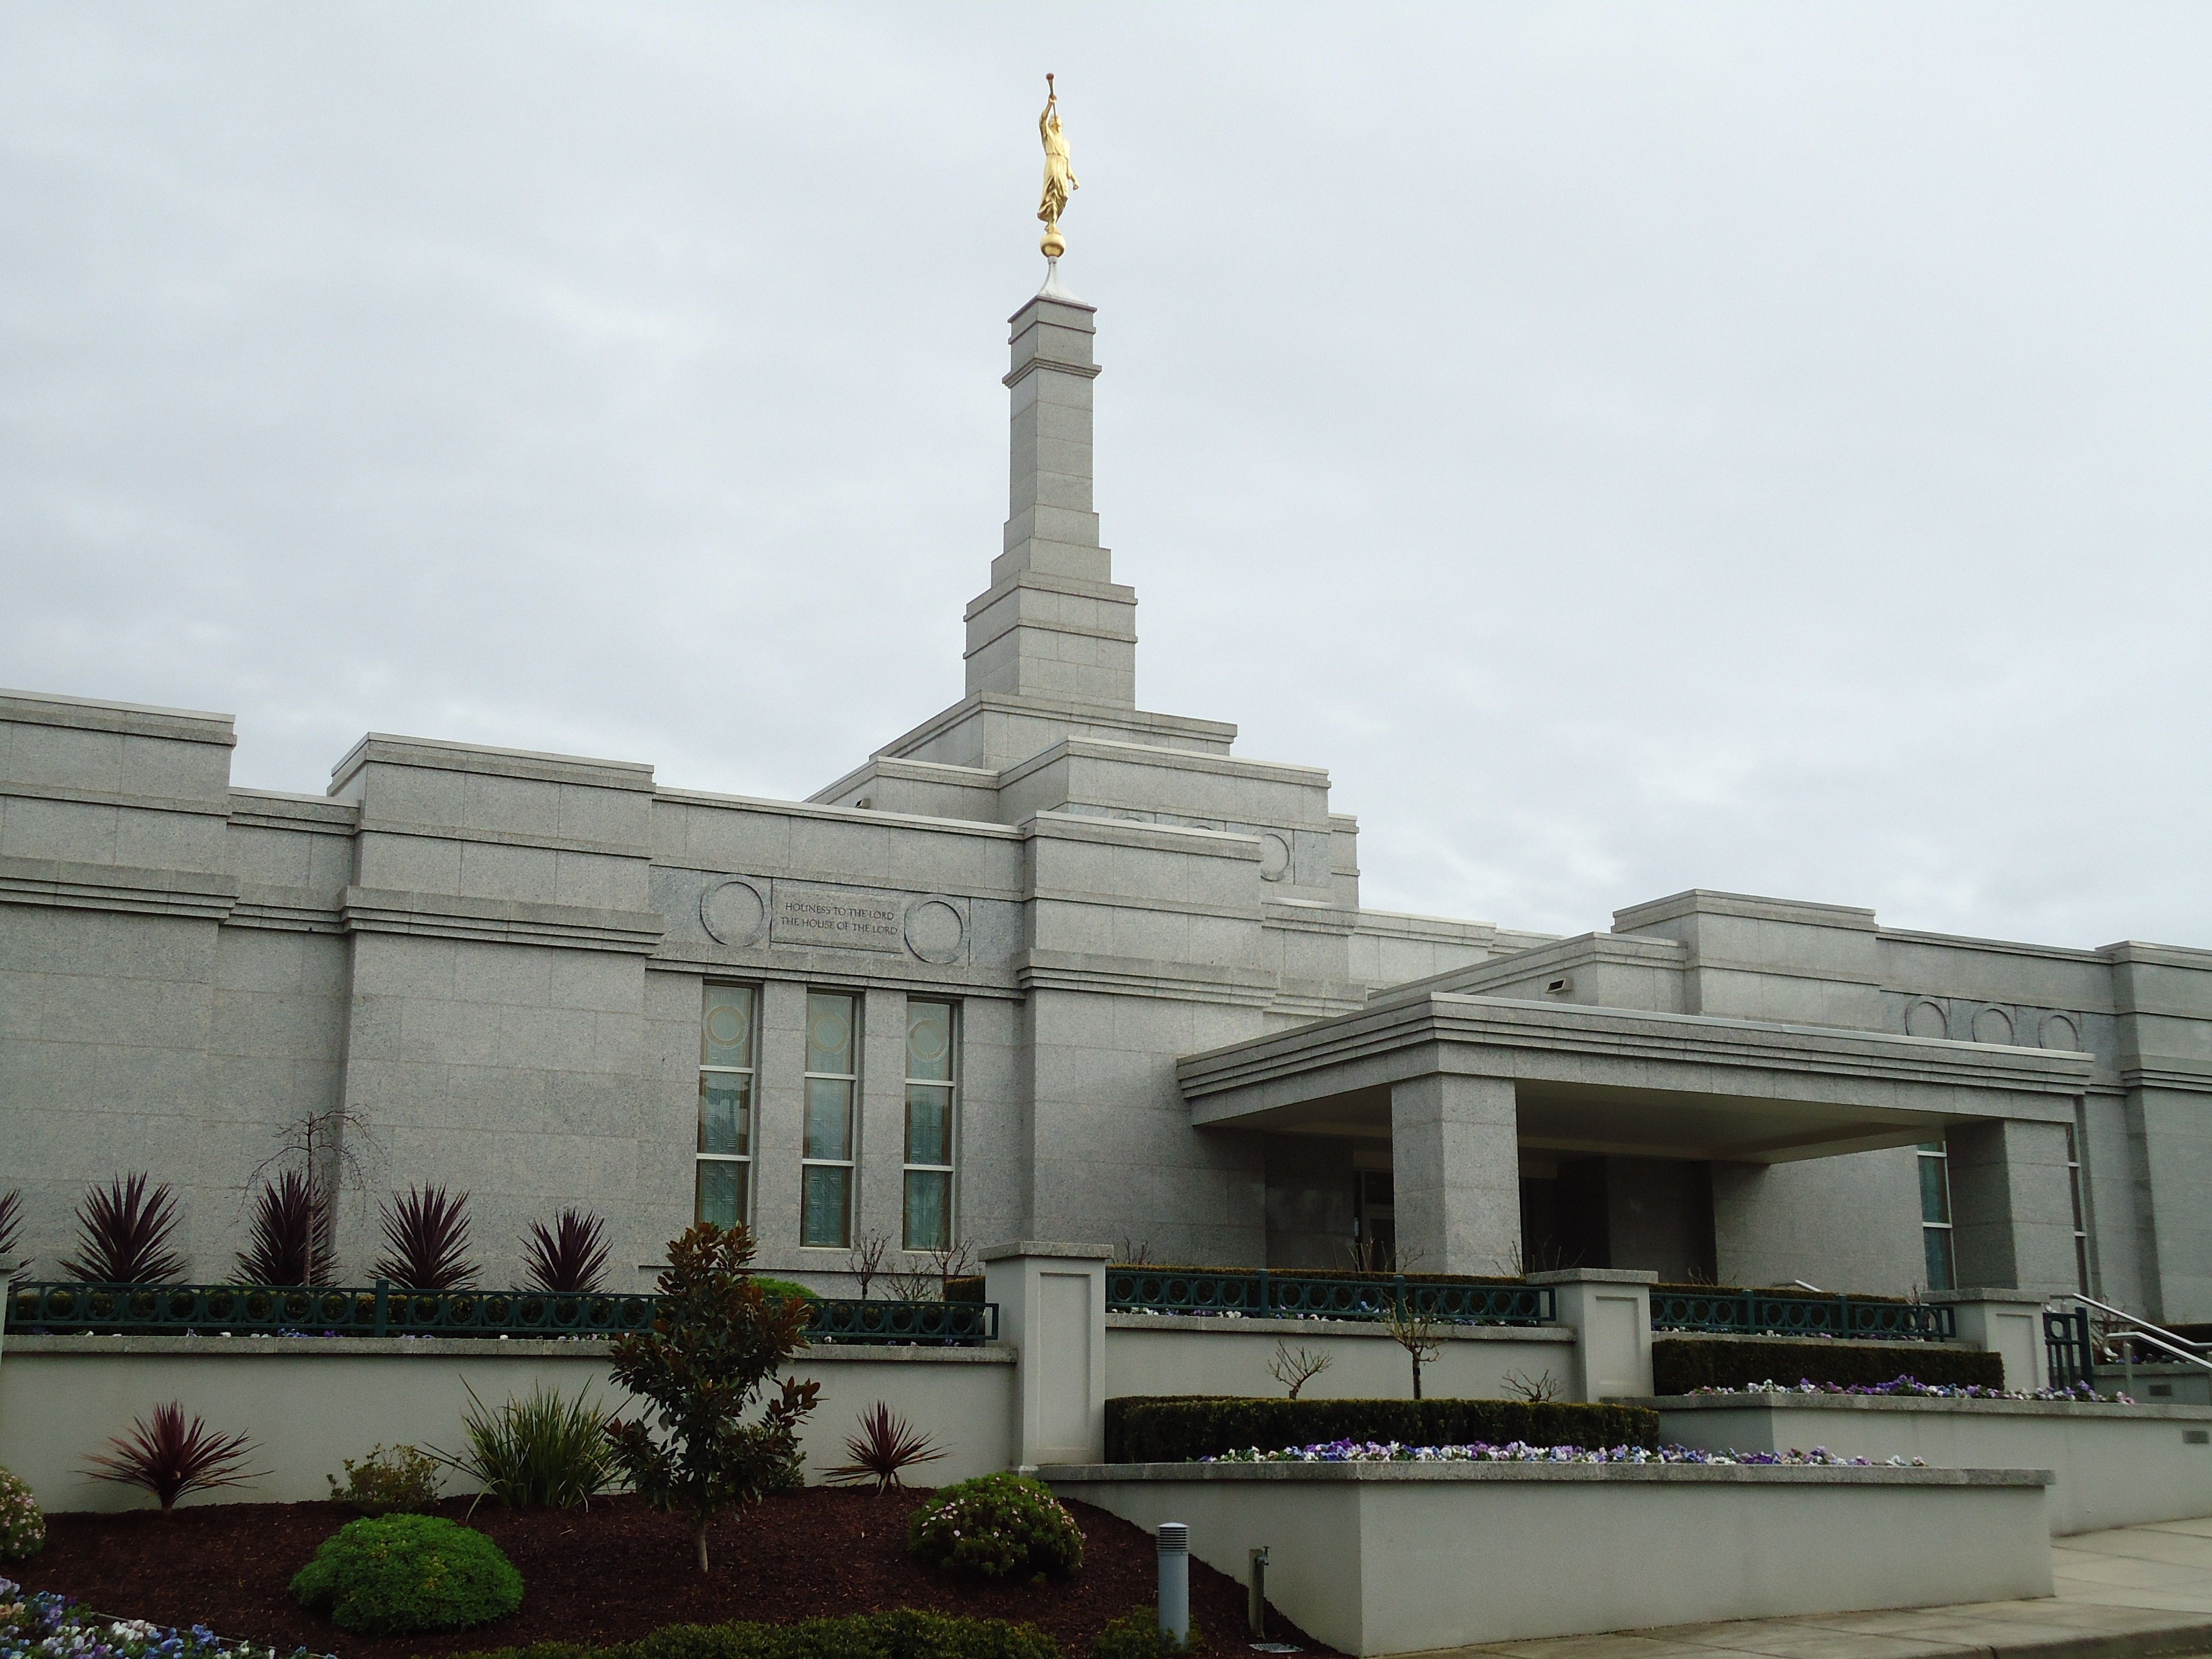 The Melbourne Australia Temple entrance, including scenery and the exterior of the temple.